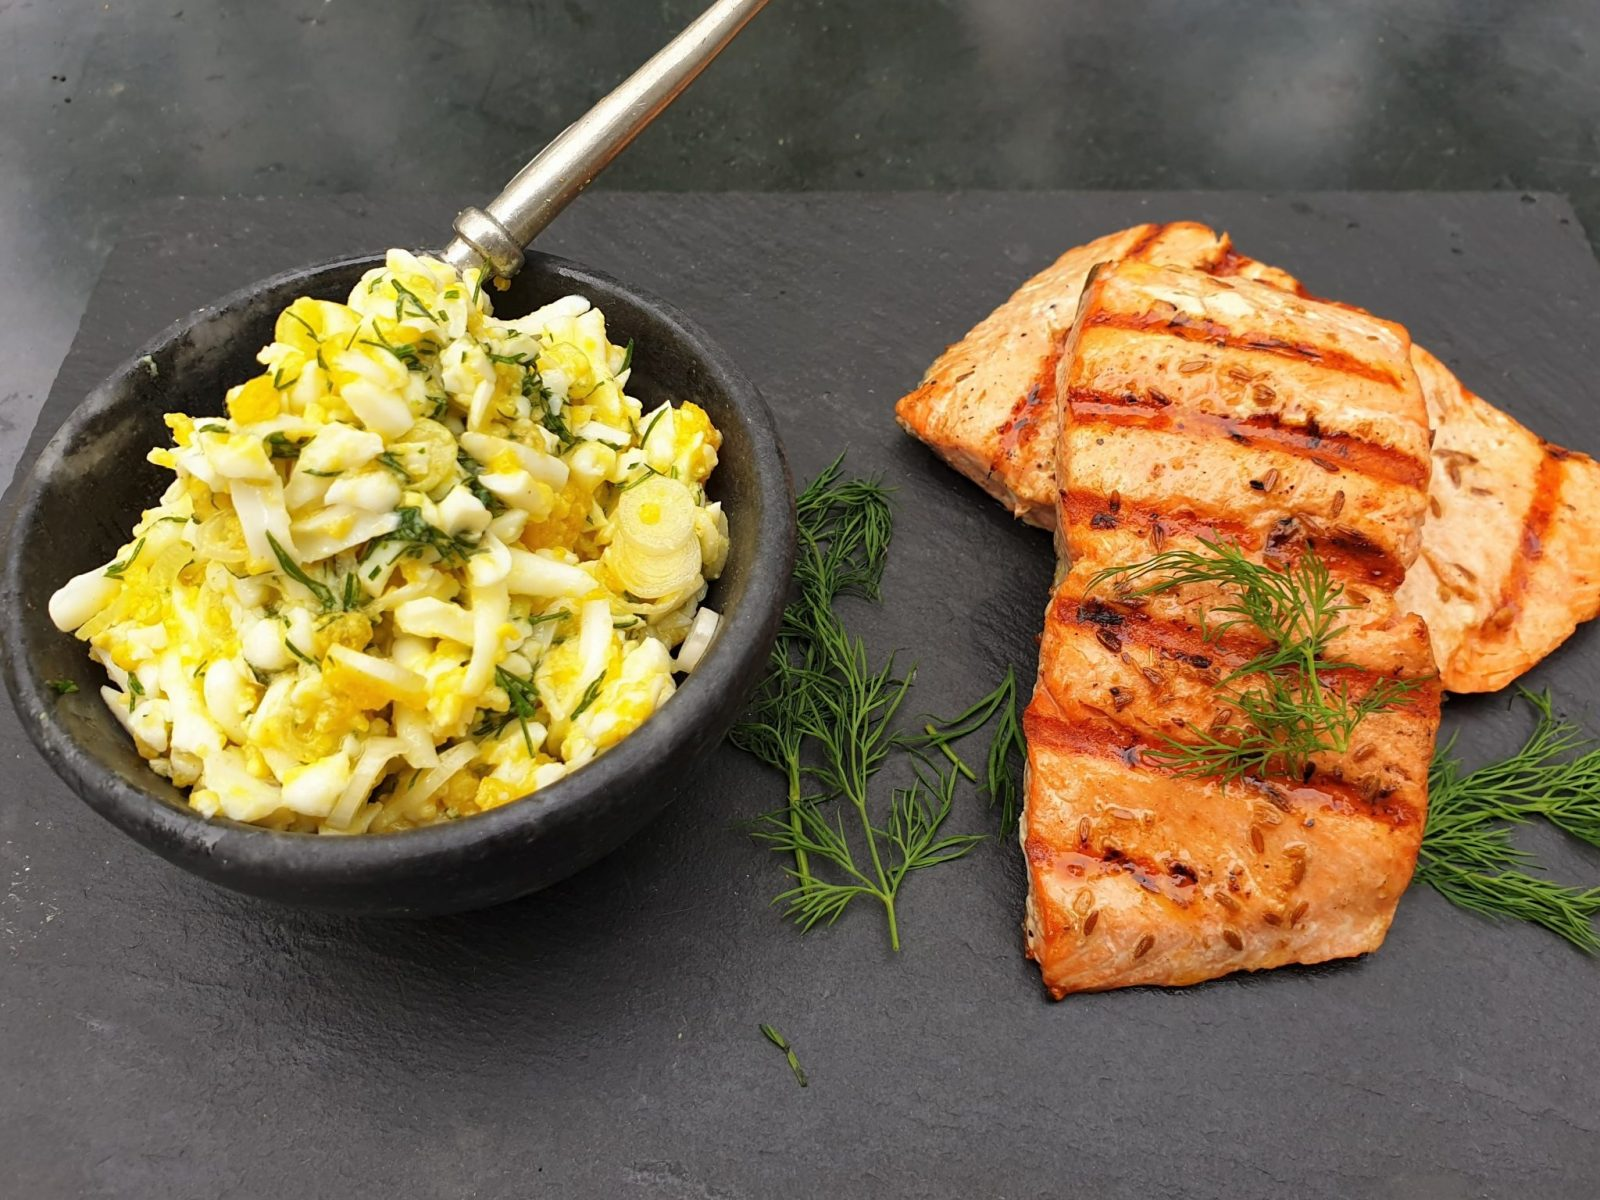 Chasing Smoke Salmon with egg and dill